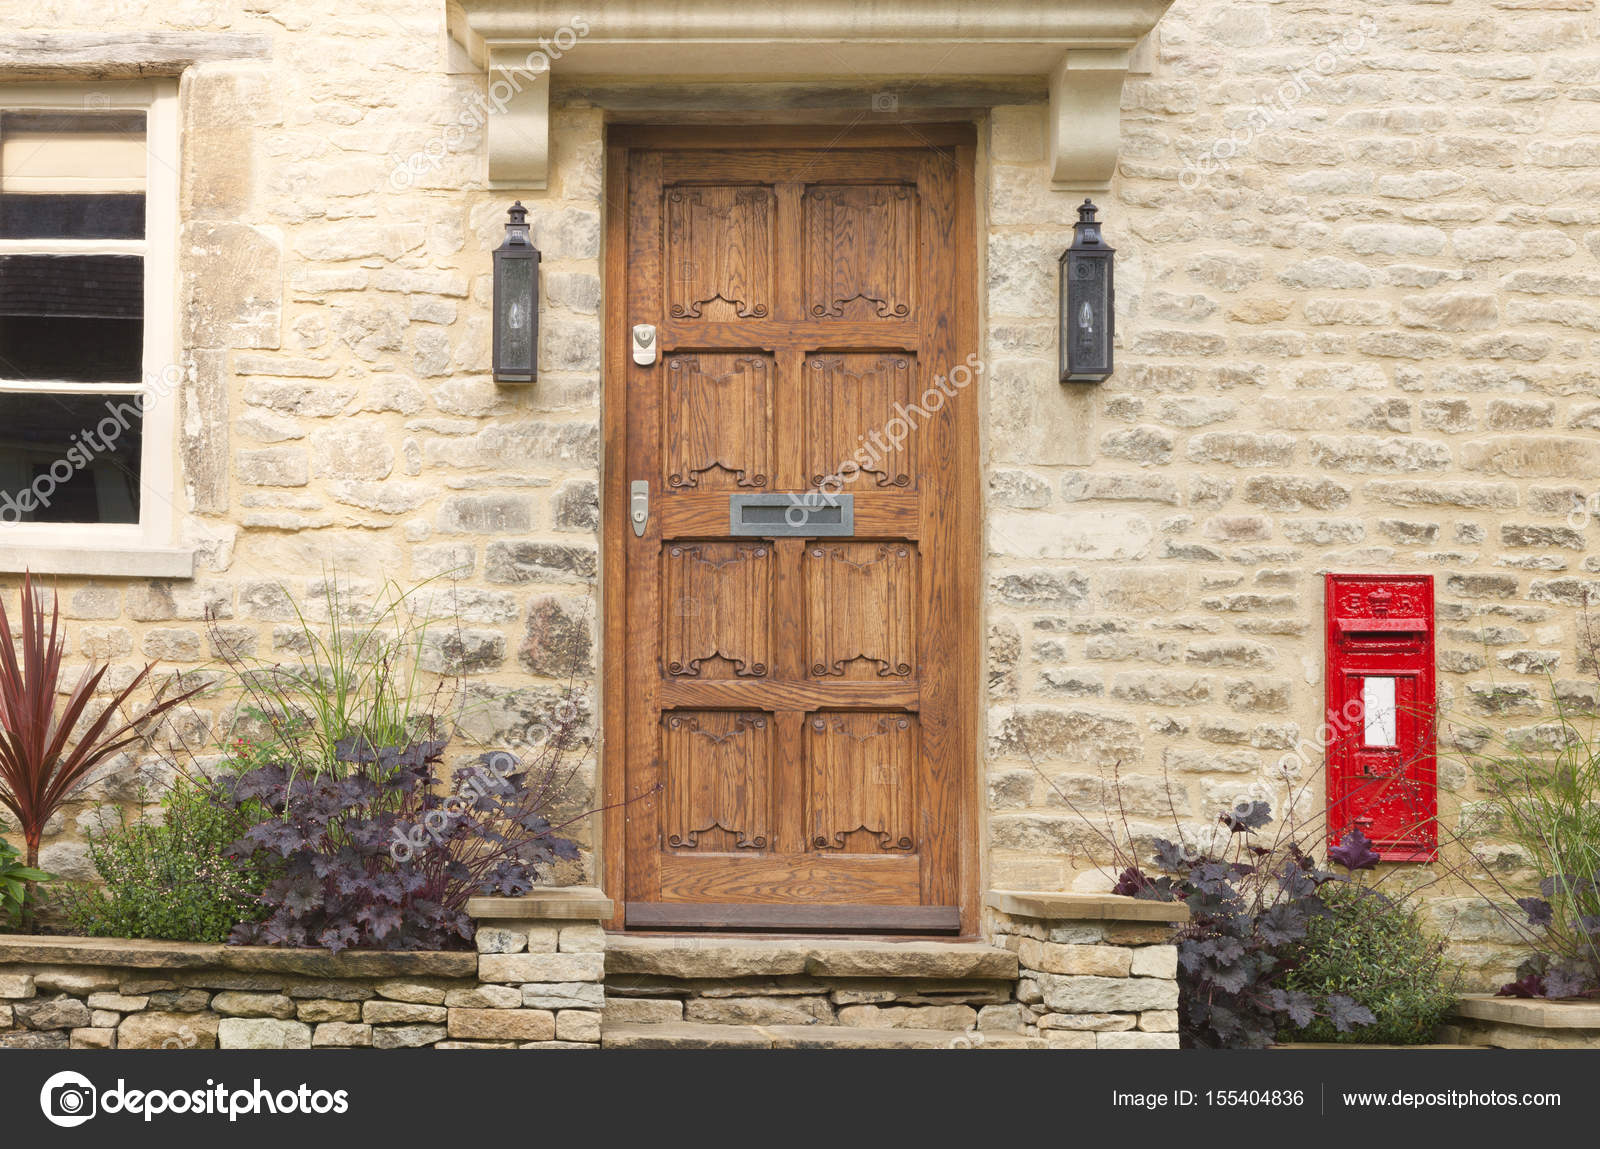 Brown Wooden Doors In An Old Traditional English Golden Stone Cottage With  A Red Post Box In The Wall And Plants In A Small Front Garden .